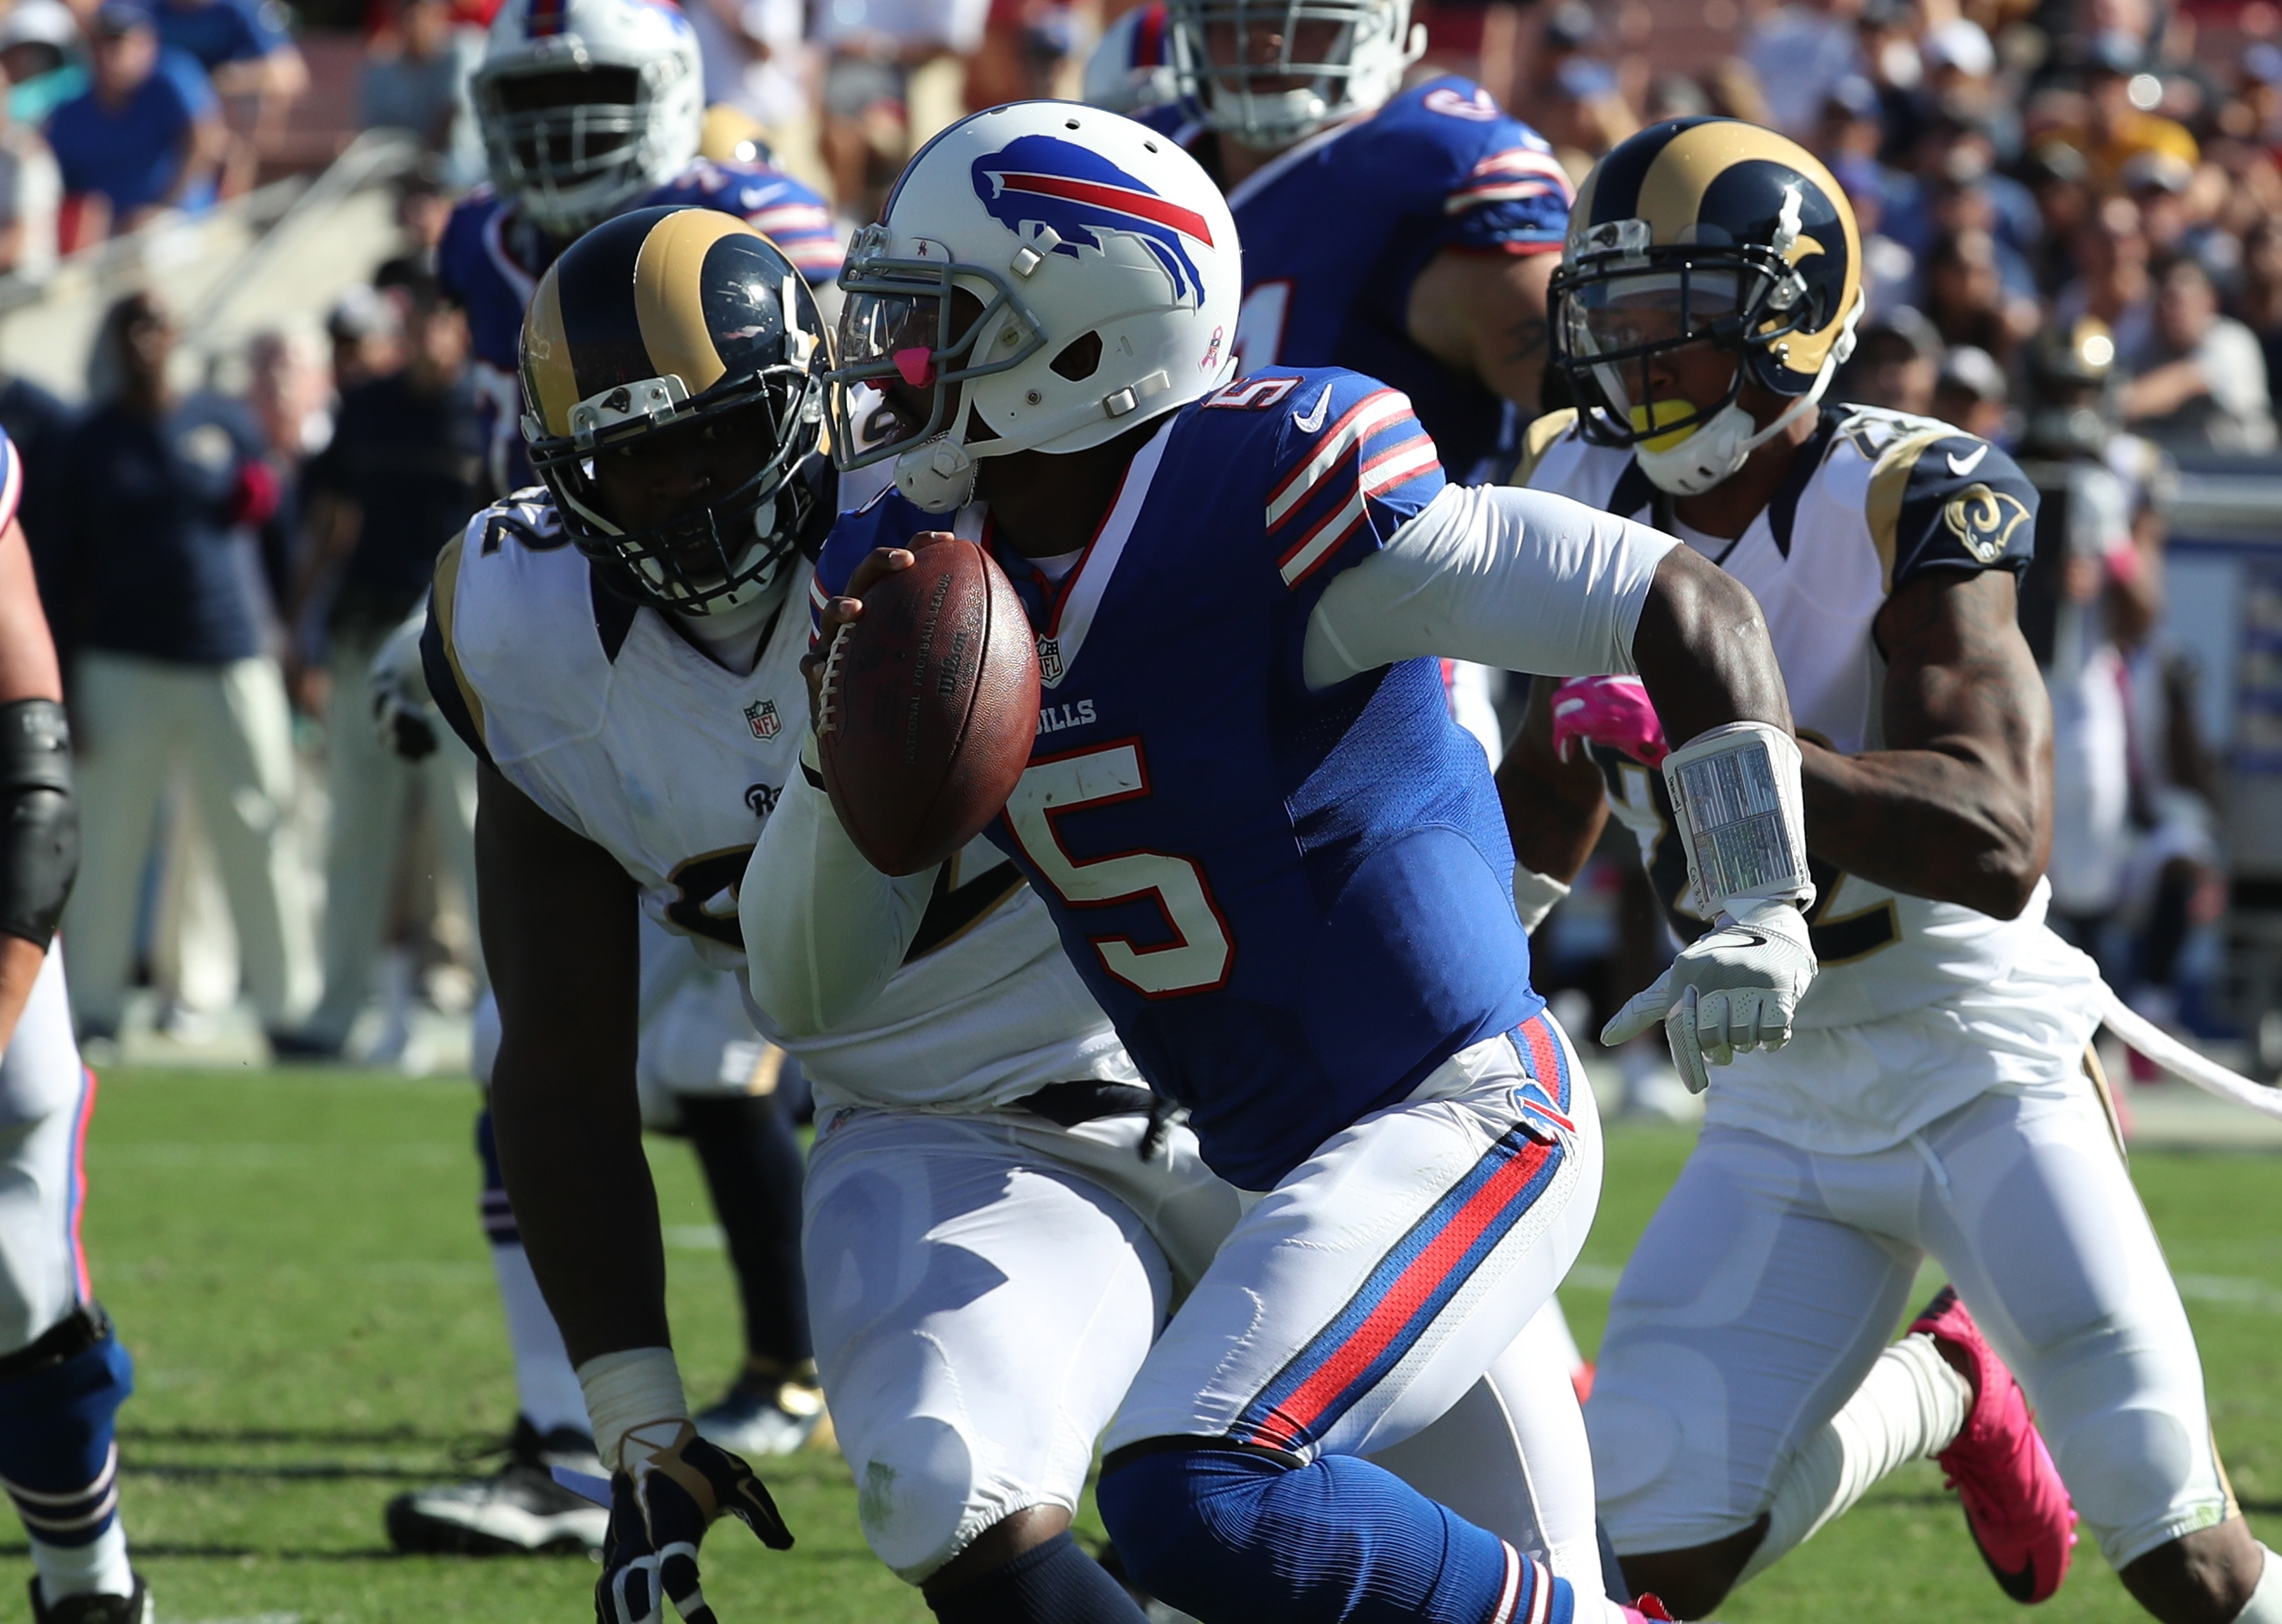 Buffalo Bills quarterback Tyrod Taylor on the move in the third quarter.